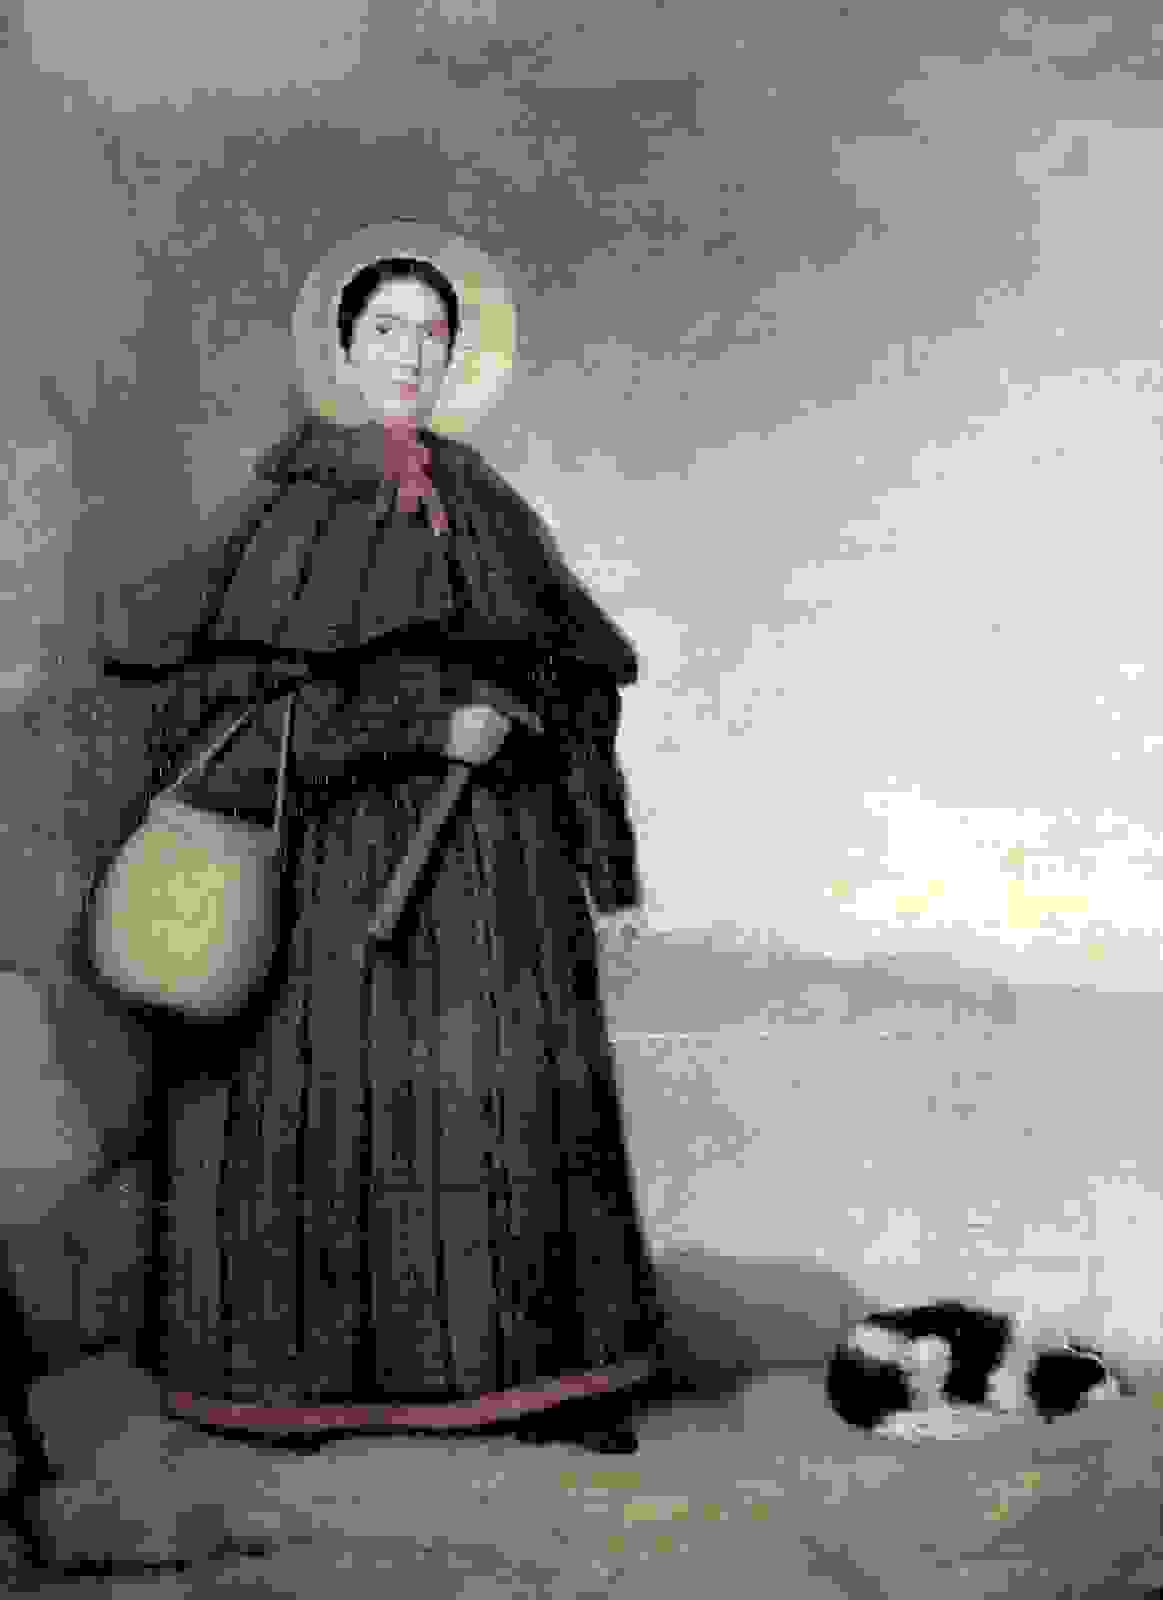 Naming Labs Mary Anning